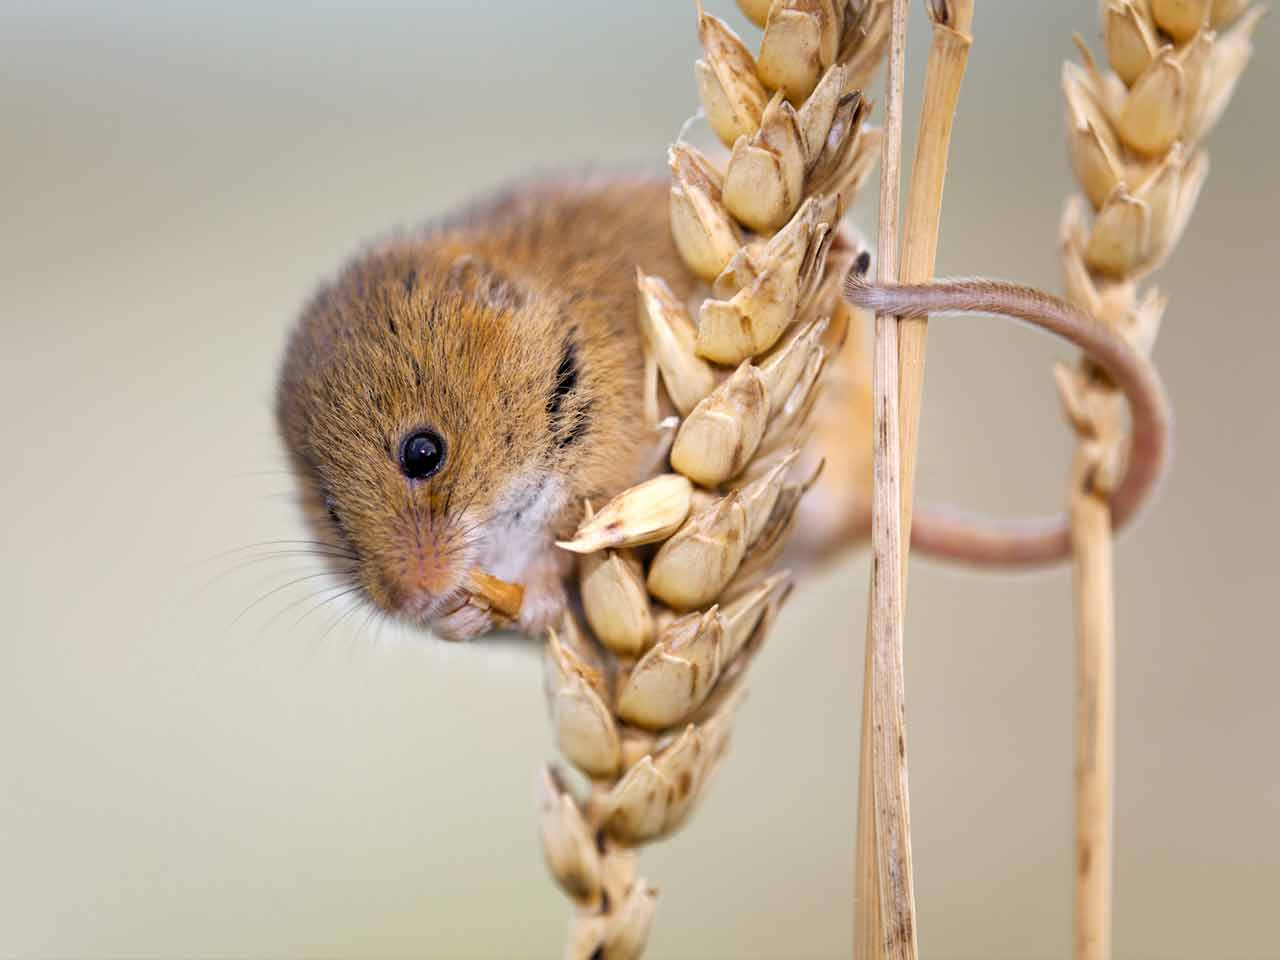 Harvest mouse photographed by David Chapman